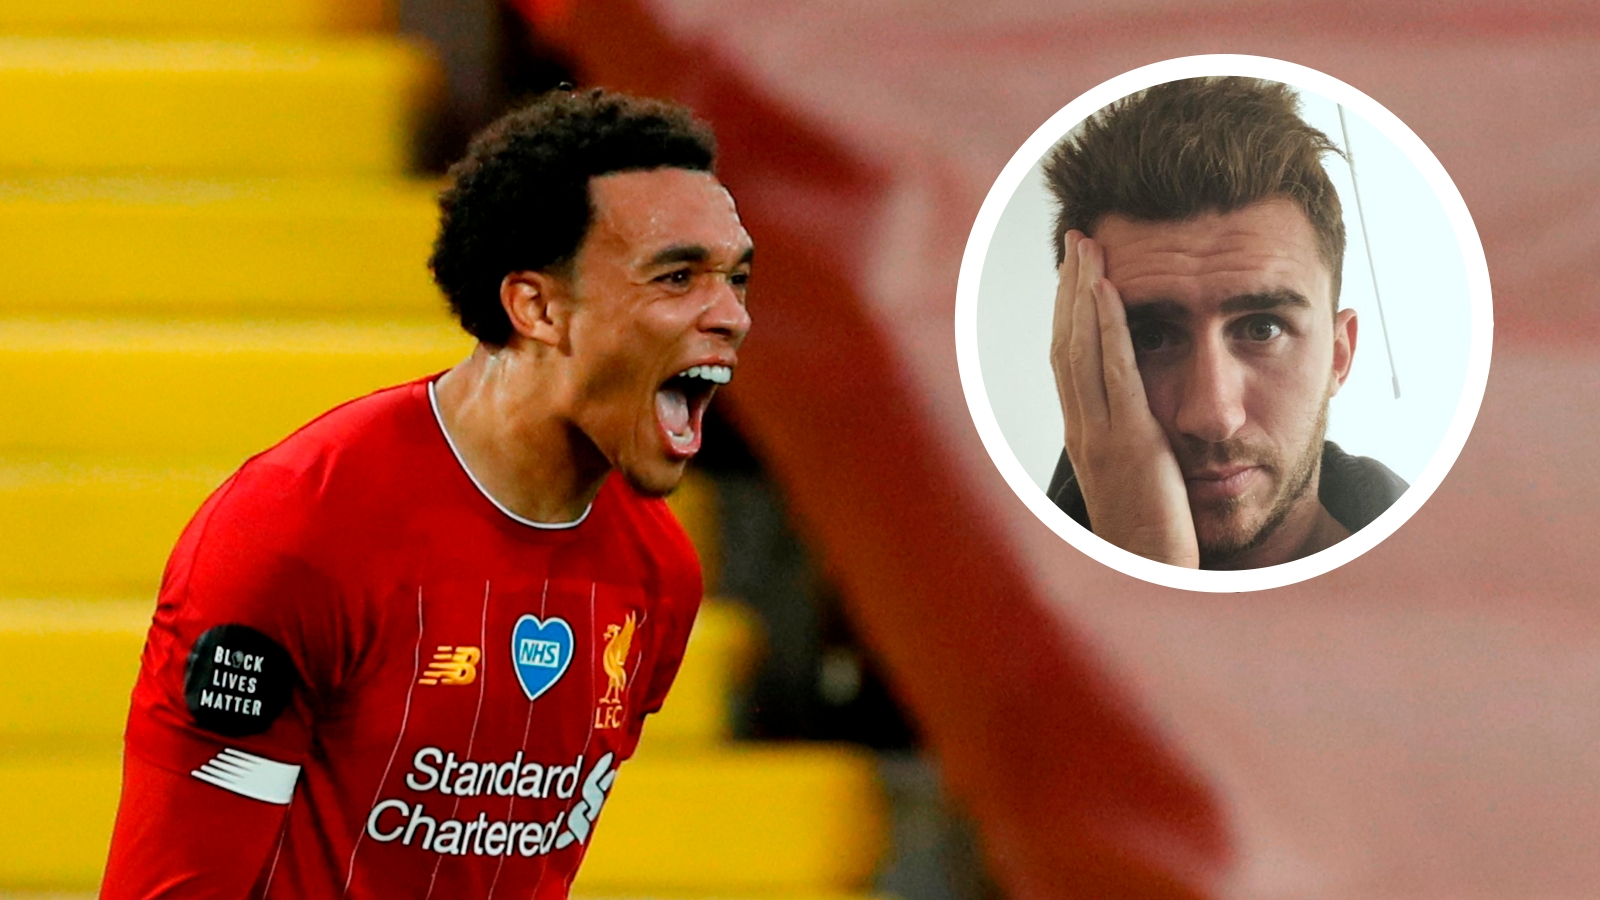 premier league stars alexander arnold and laporte find faults with fifa 21 ratings goal com premier league stars alexander arnold